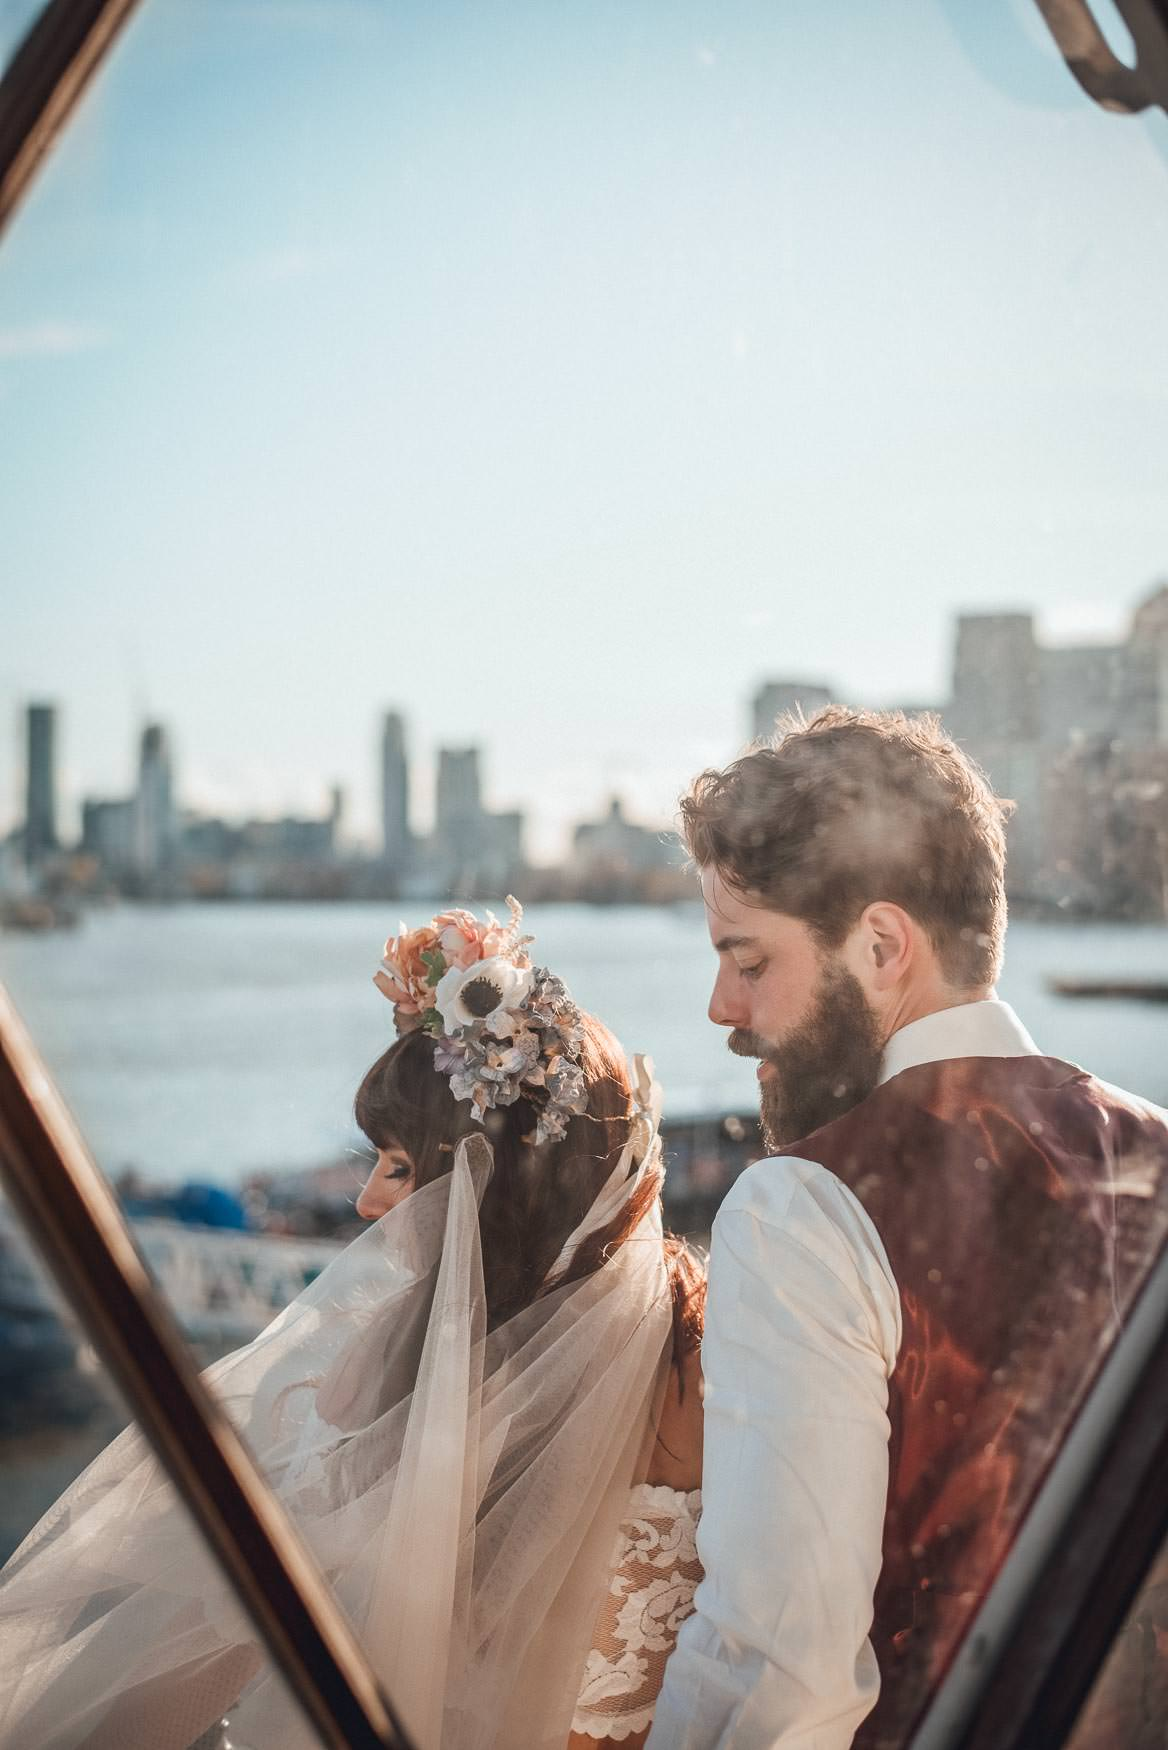 Couple , framed by a window overlooking a london cityscape. Alternative, Creative Wedding photography Ideas